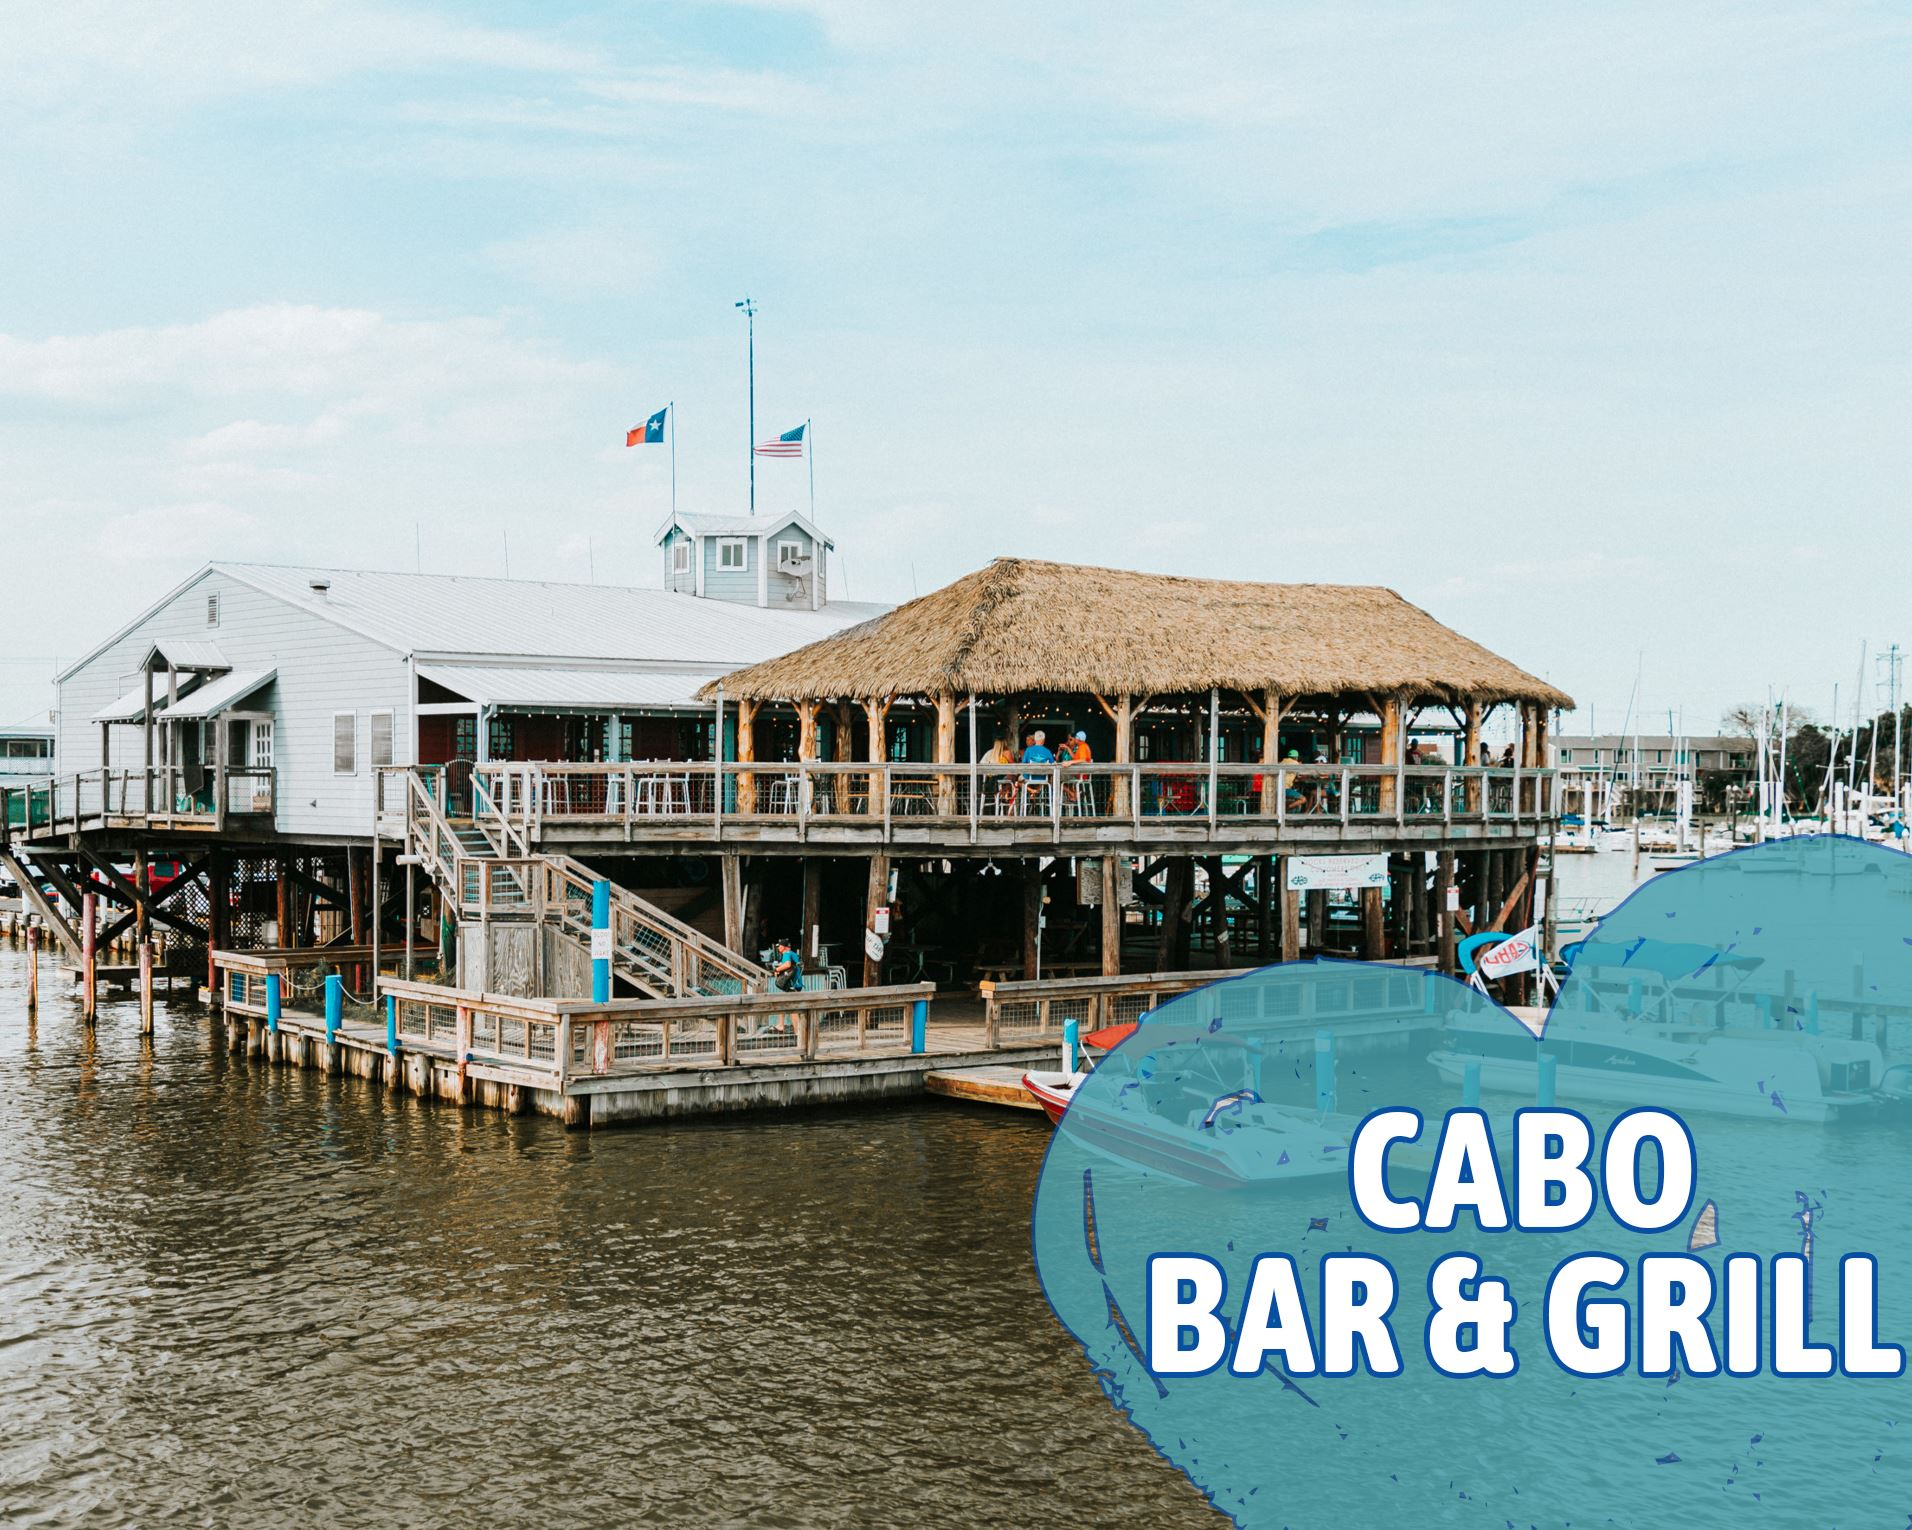 Cabo Opens in new window